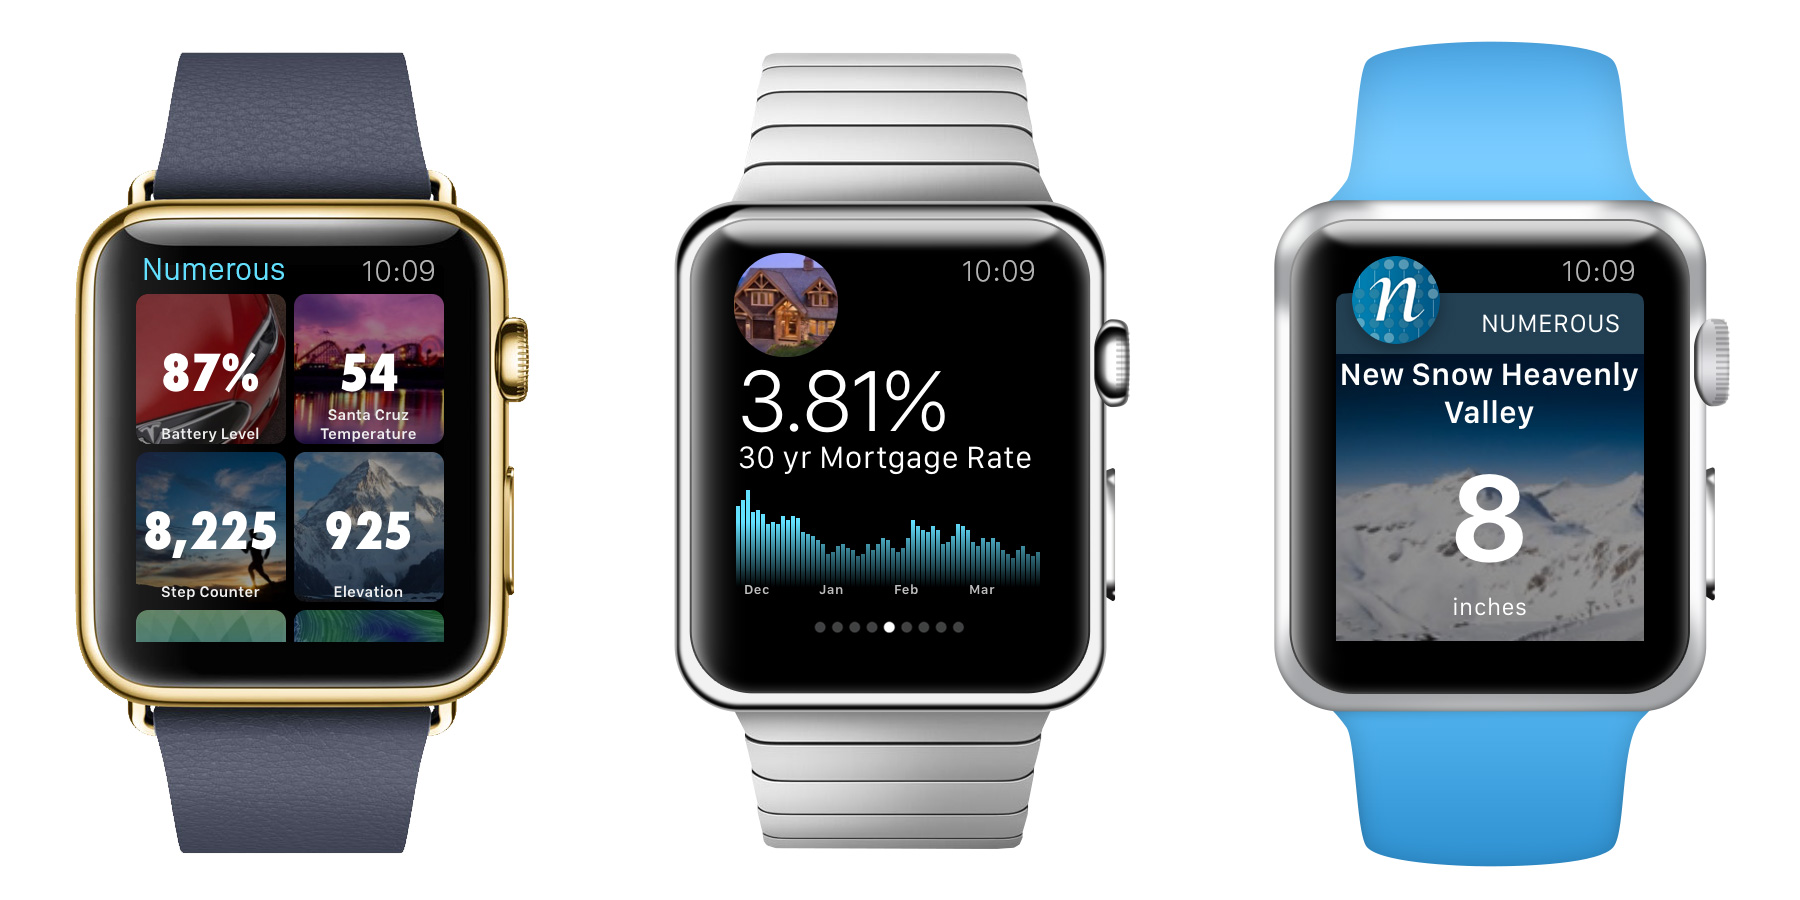 Numerous for Apple Watch